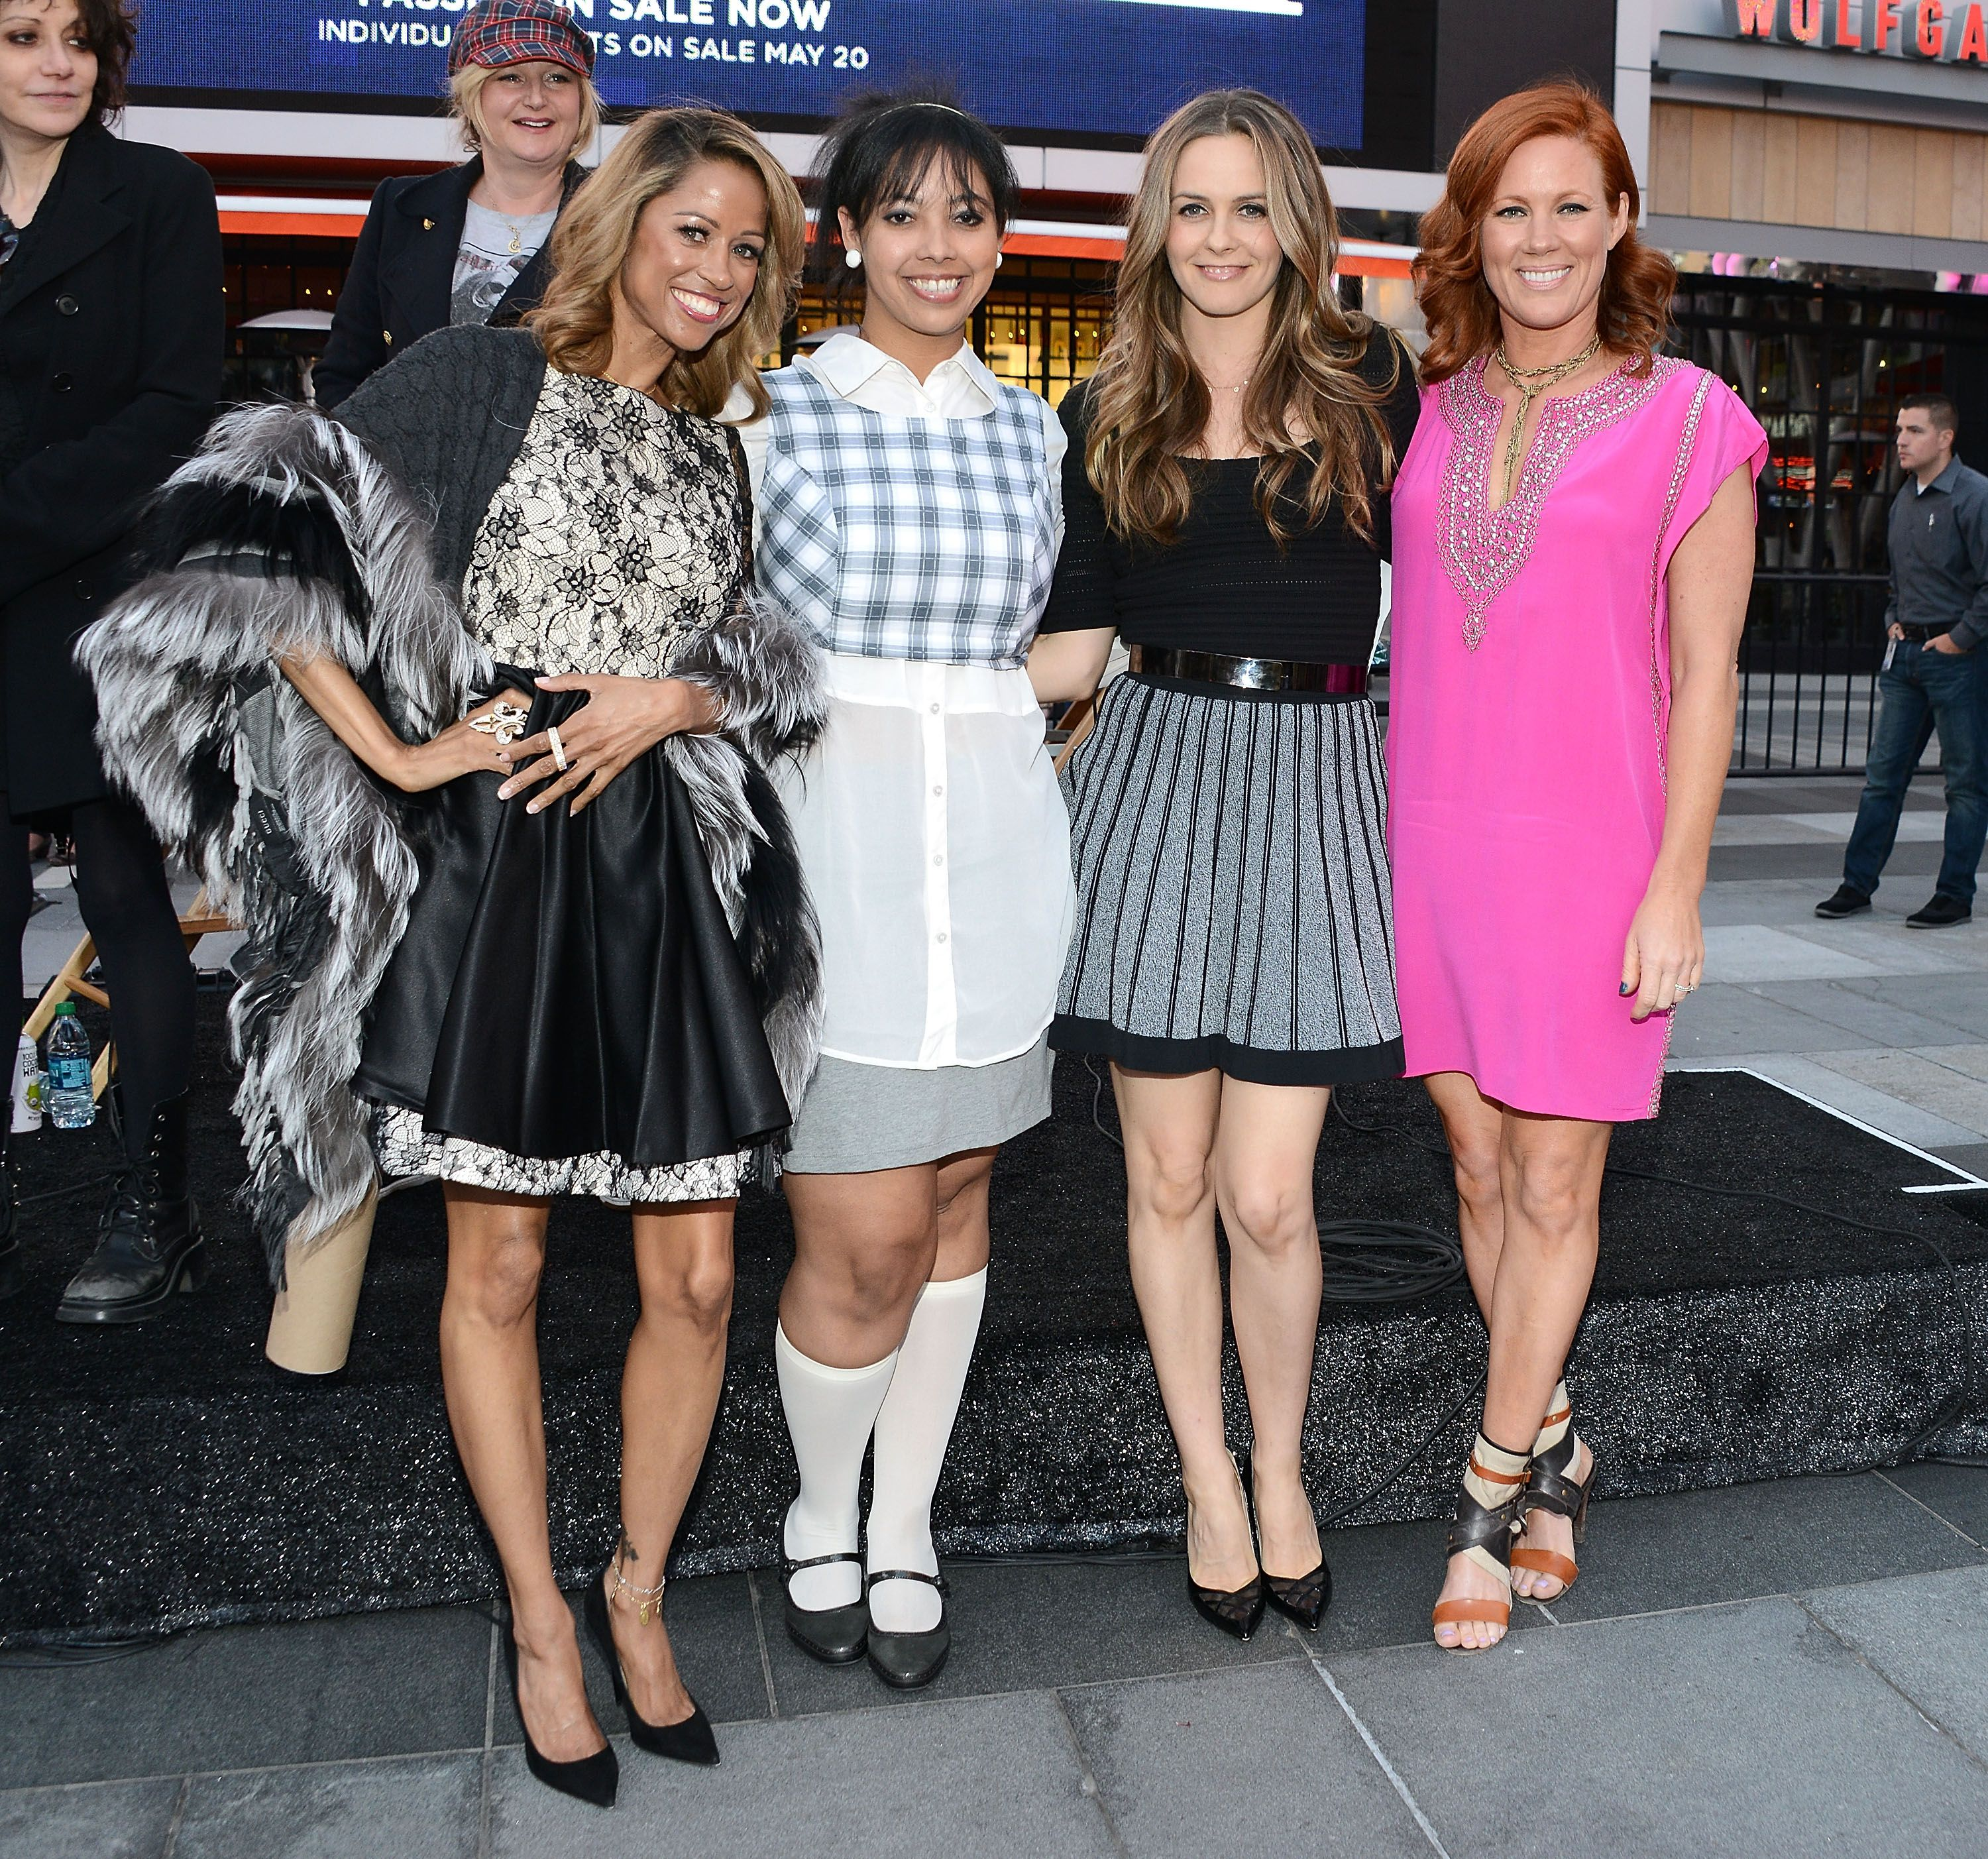 See Clueless stars' reunion pictures